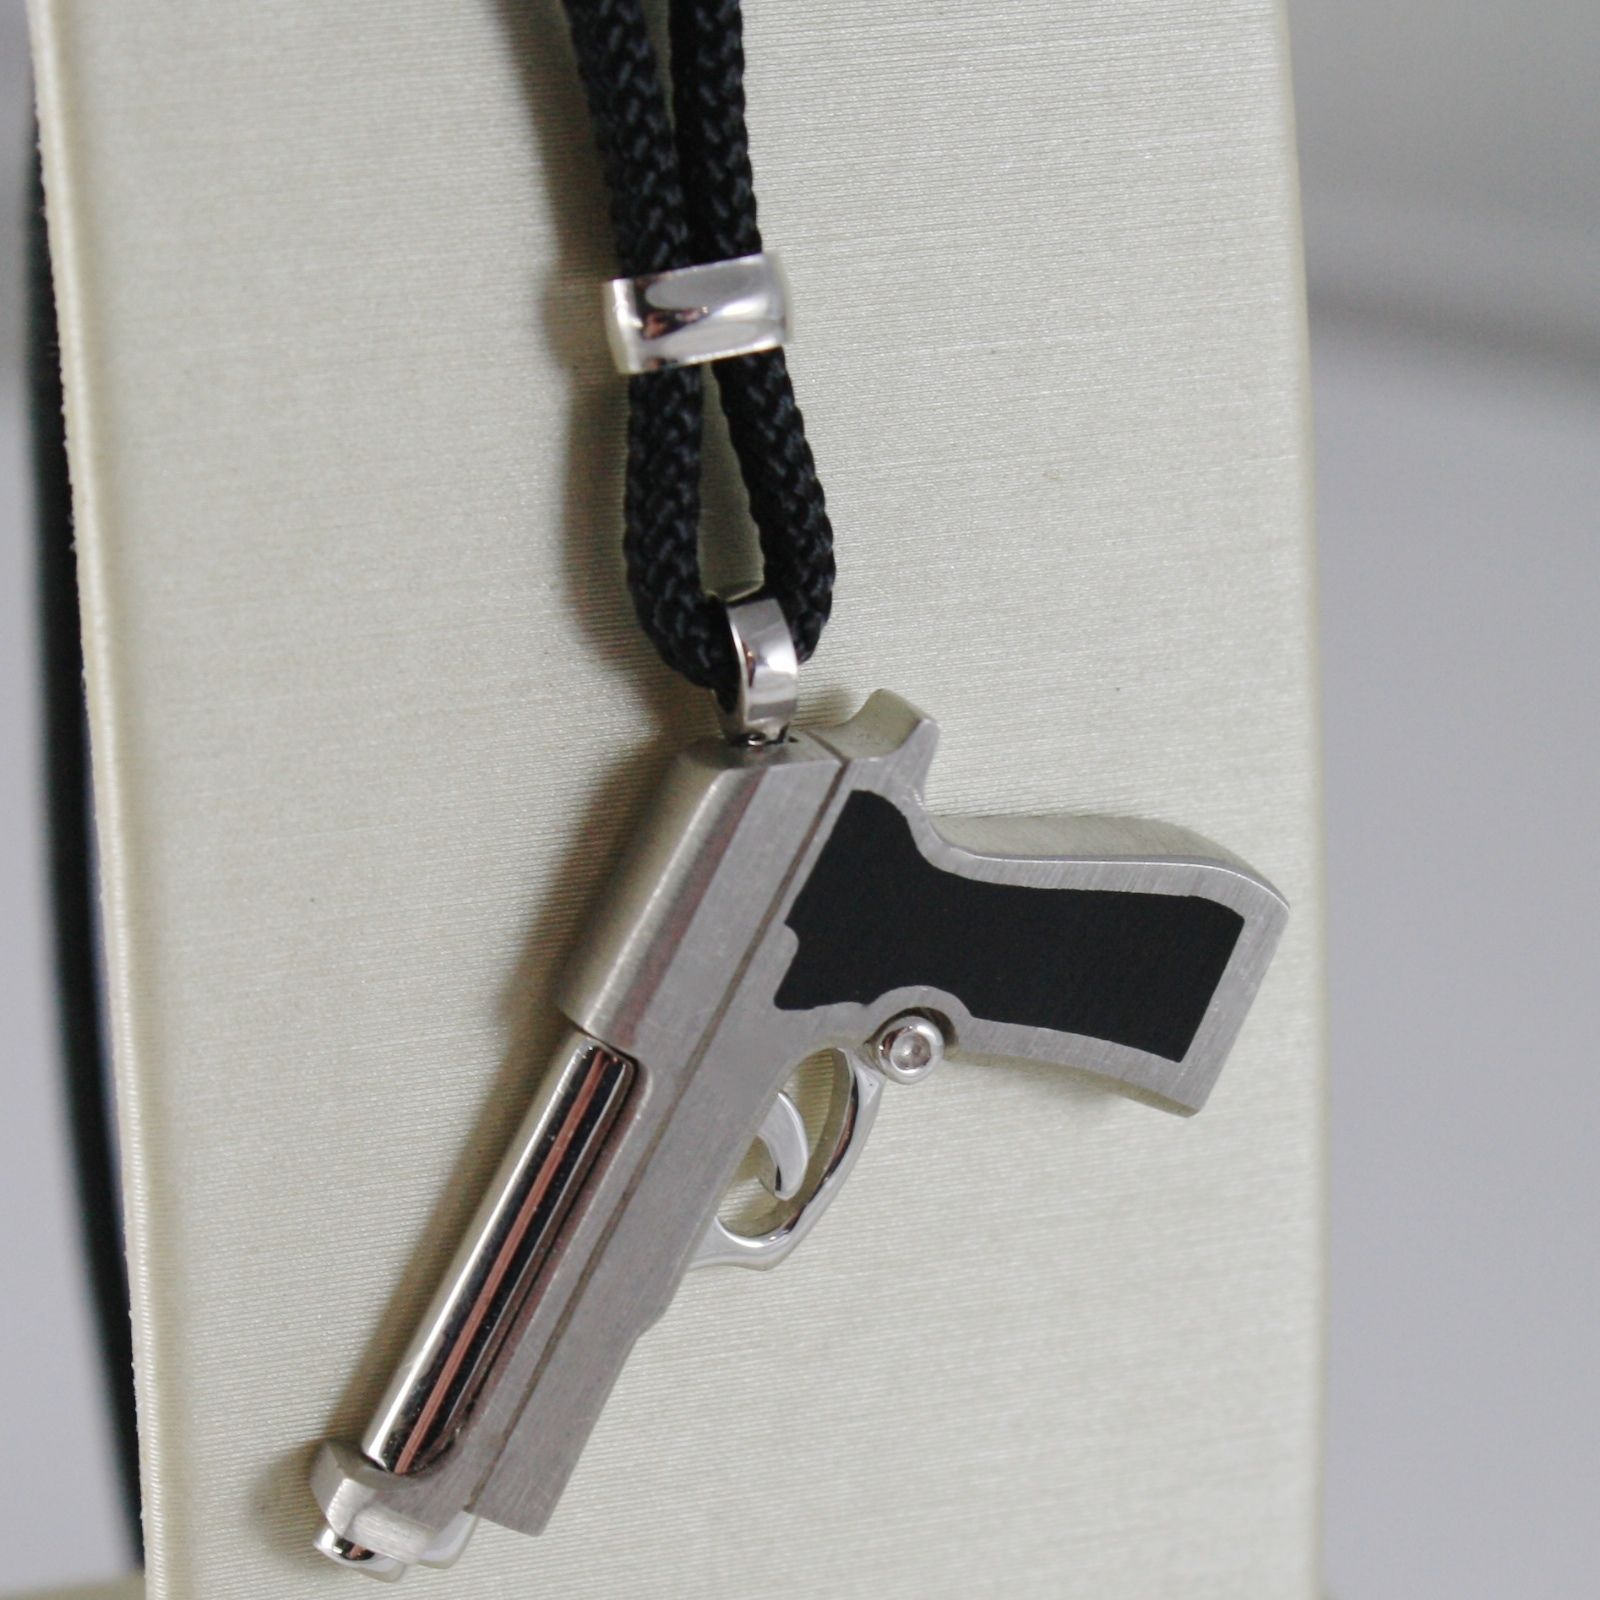 925 SILVER NECKLACE GUN PENDANT FINELY WORKED, SATIN, BY ZANCAN MADE IN ITALY